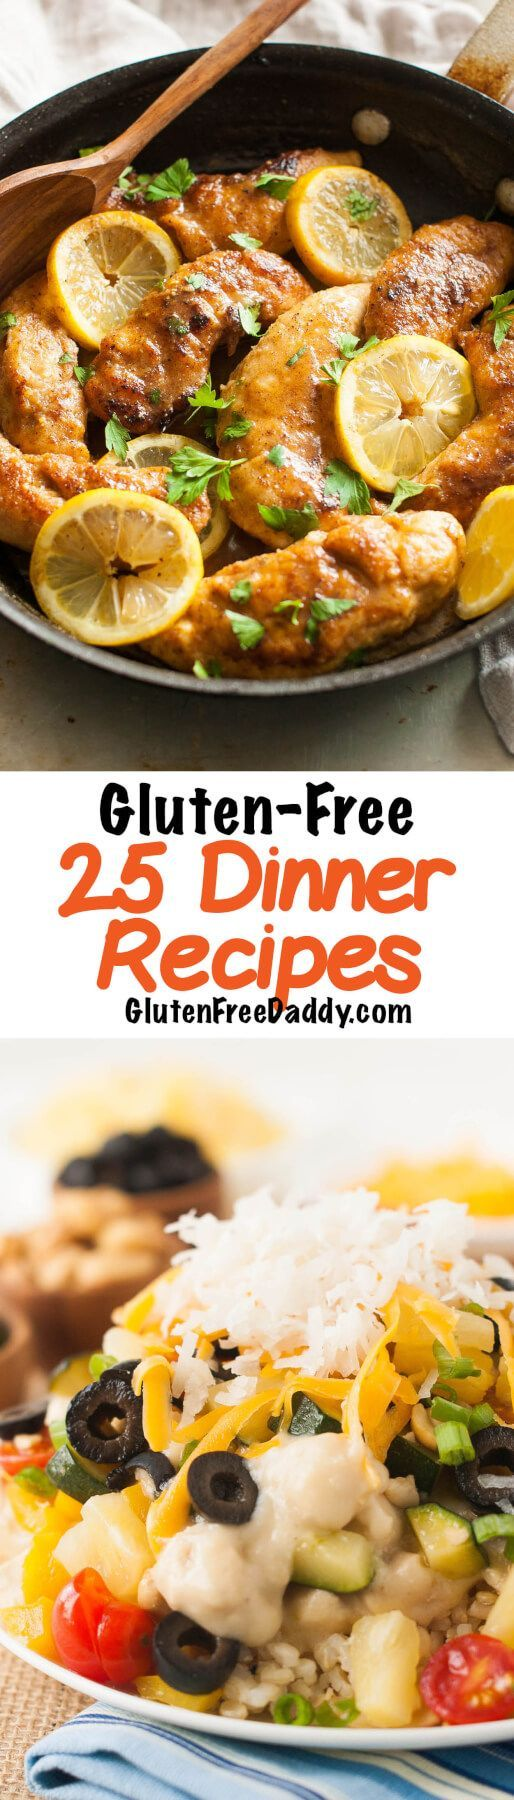 902 best main dish recipes images on pinterest savory snacks 902 best main dish recipes images on pinterest savory snacks baking center and drinks forumfinder Image collections